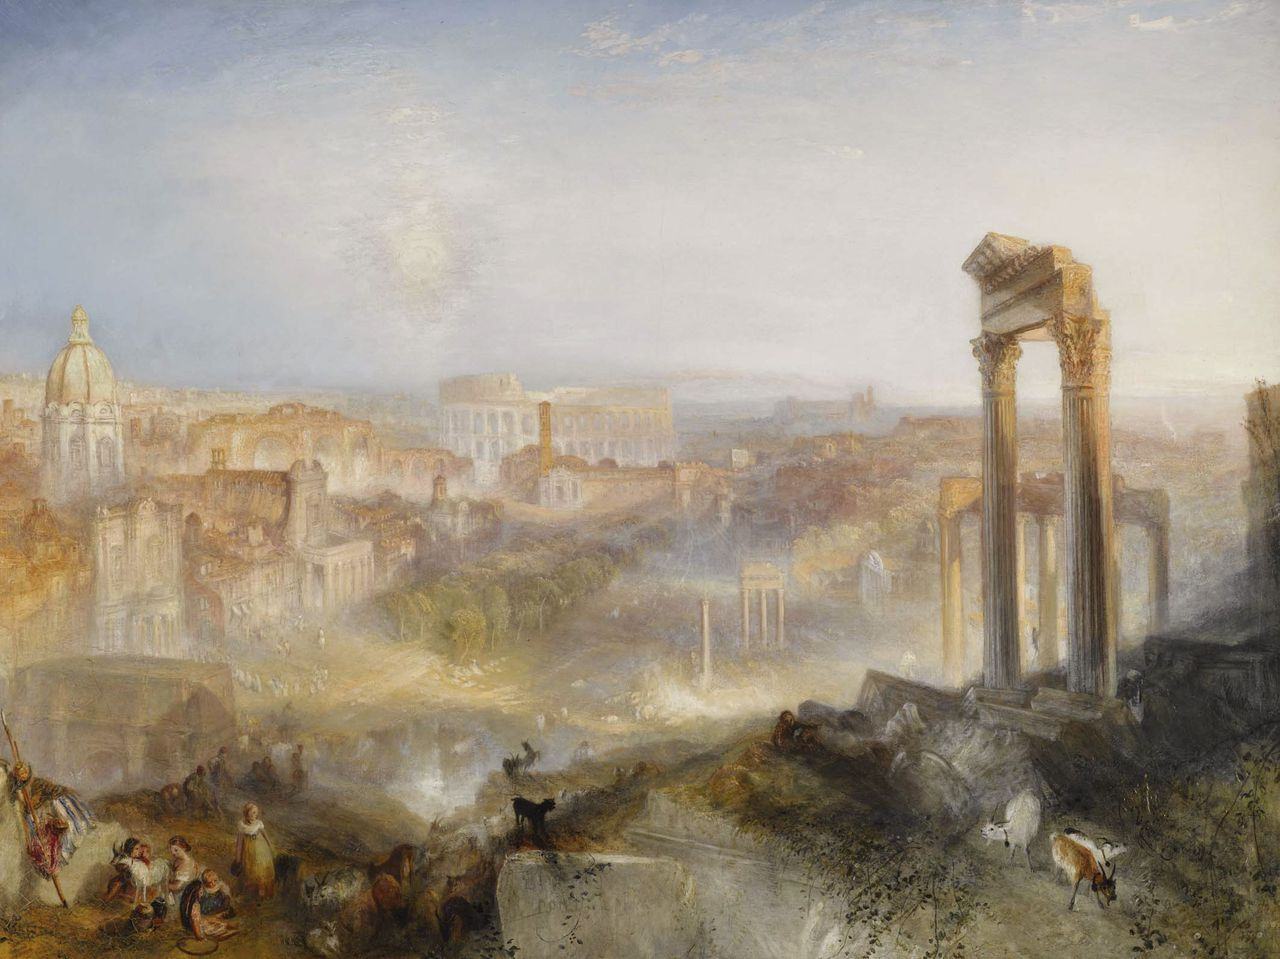 """'Gezicht op Rome' van William Turner uit 1839. Op 7 juli geveild voor 29,7 miljoen pond. """"Modern Rome - Campo Vaccino'' by J.M.W. Turner is shown in this undated photo released to the press on March 25, 2010. The painting, not seen at auction since 1878, is expected to fetch between 12 million and 18 million pounds at Sotheby's July 7 sale of Old Master and Early British Paintings in London. Source: Sotheby's via Bloomberg EDITOR'S NOTE: NO SALES. EDITORIAL USE ONLY."""